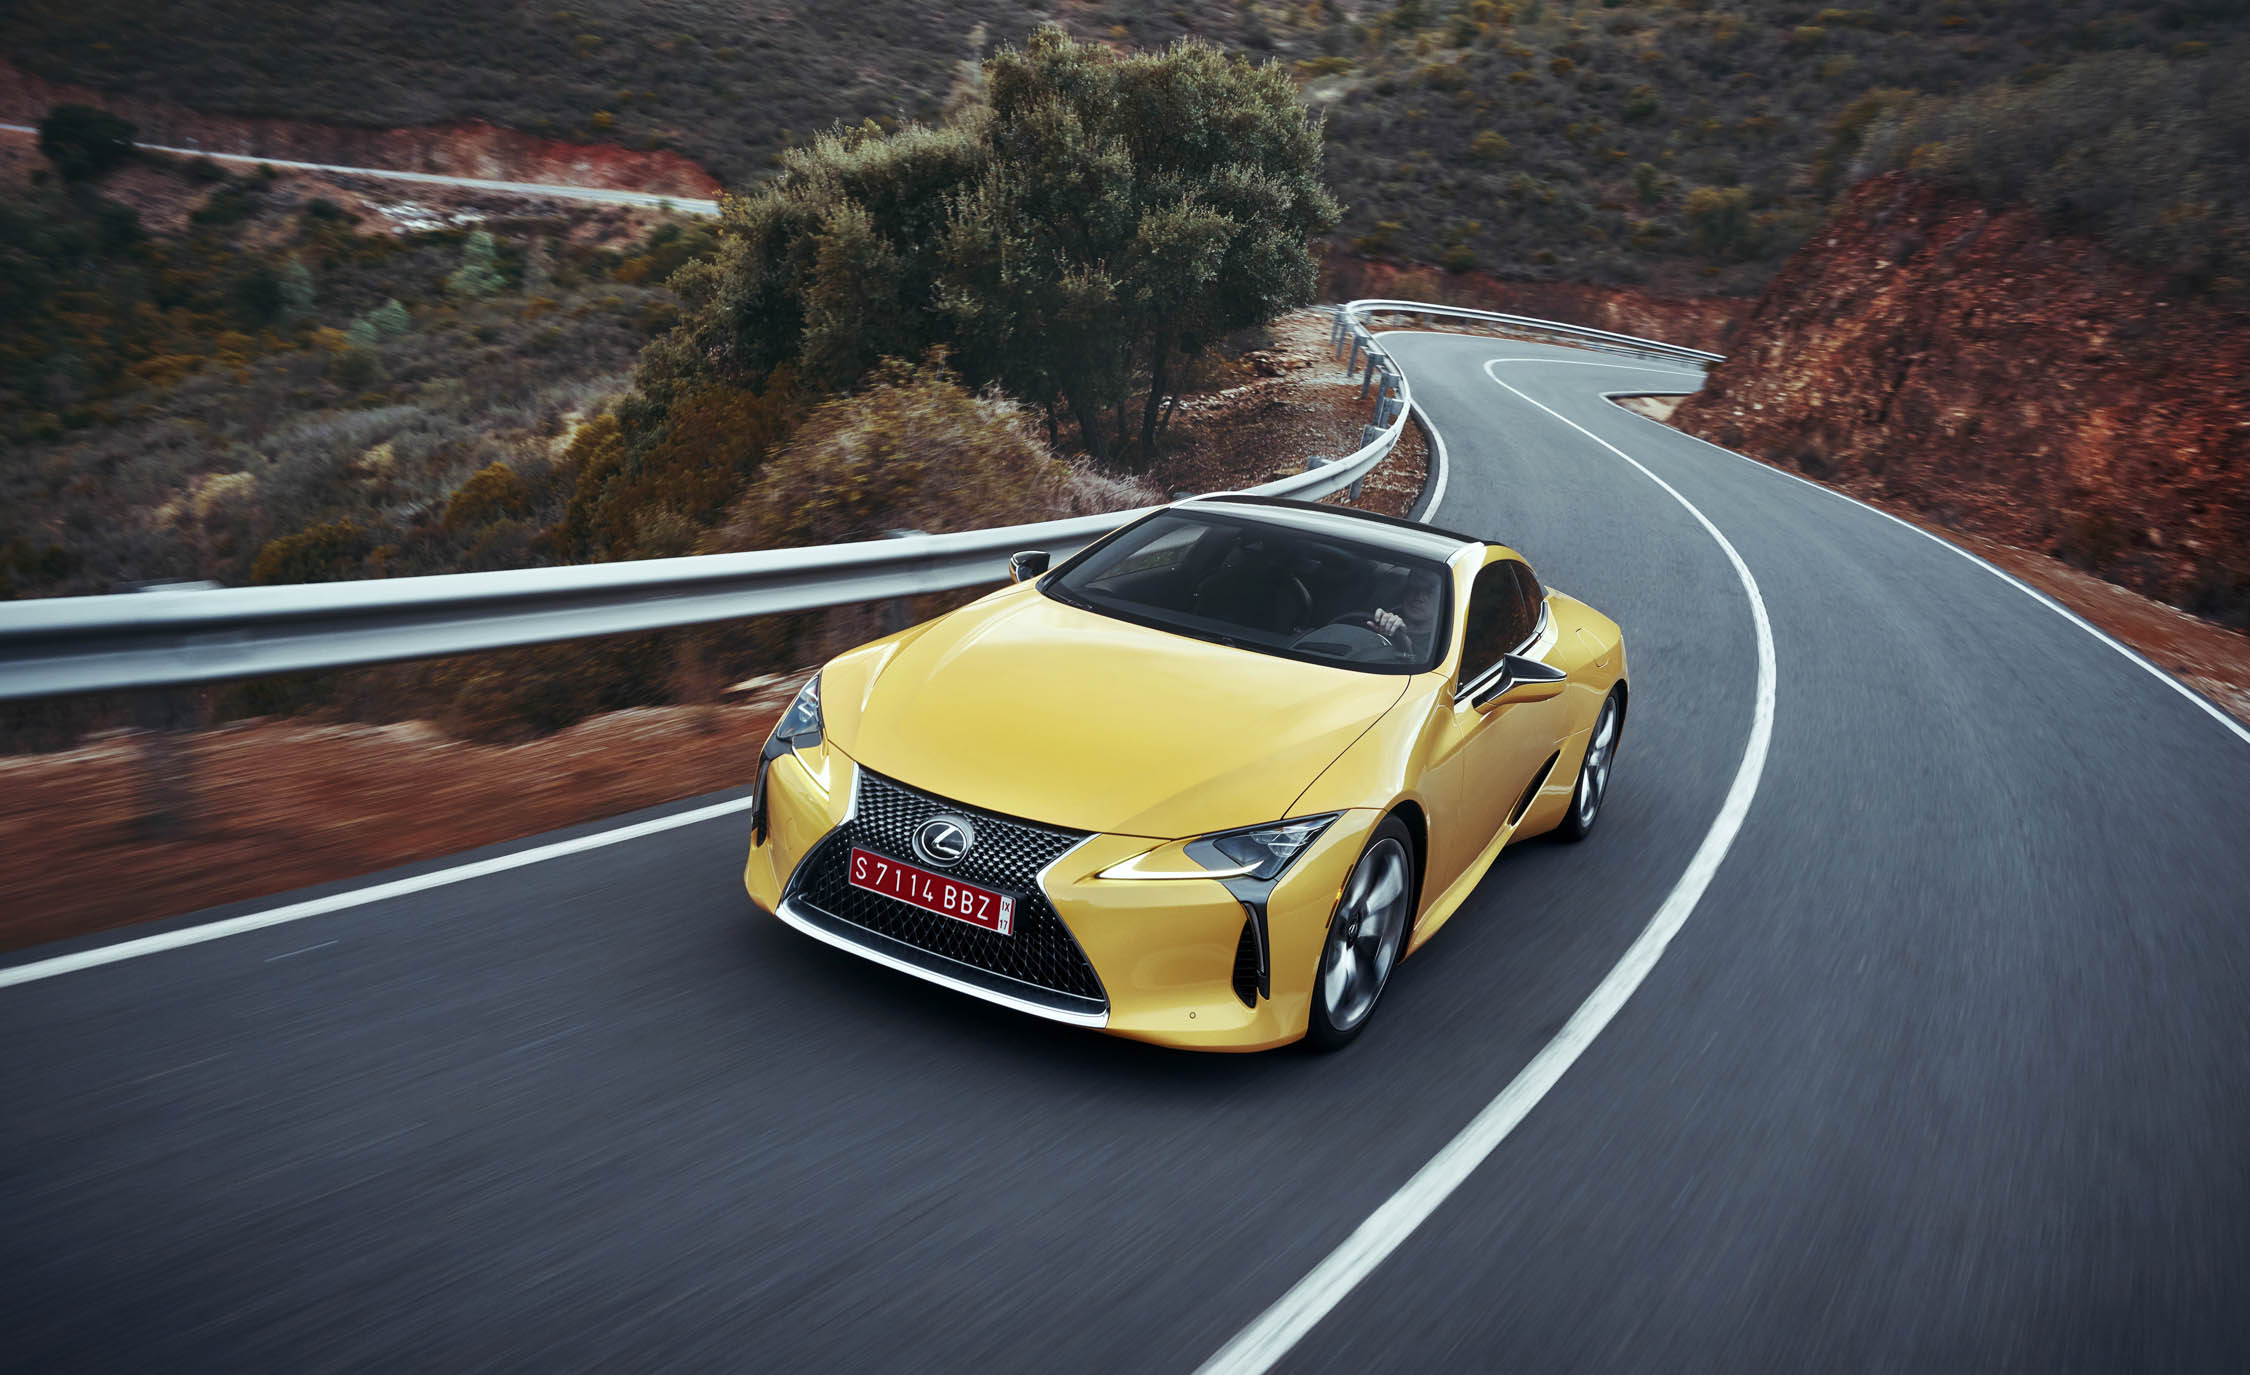 2018 Lexus Lc500 Yellow Test Drive Front And Side (Photo 72 of 84)